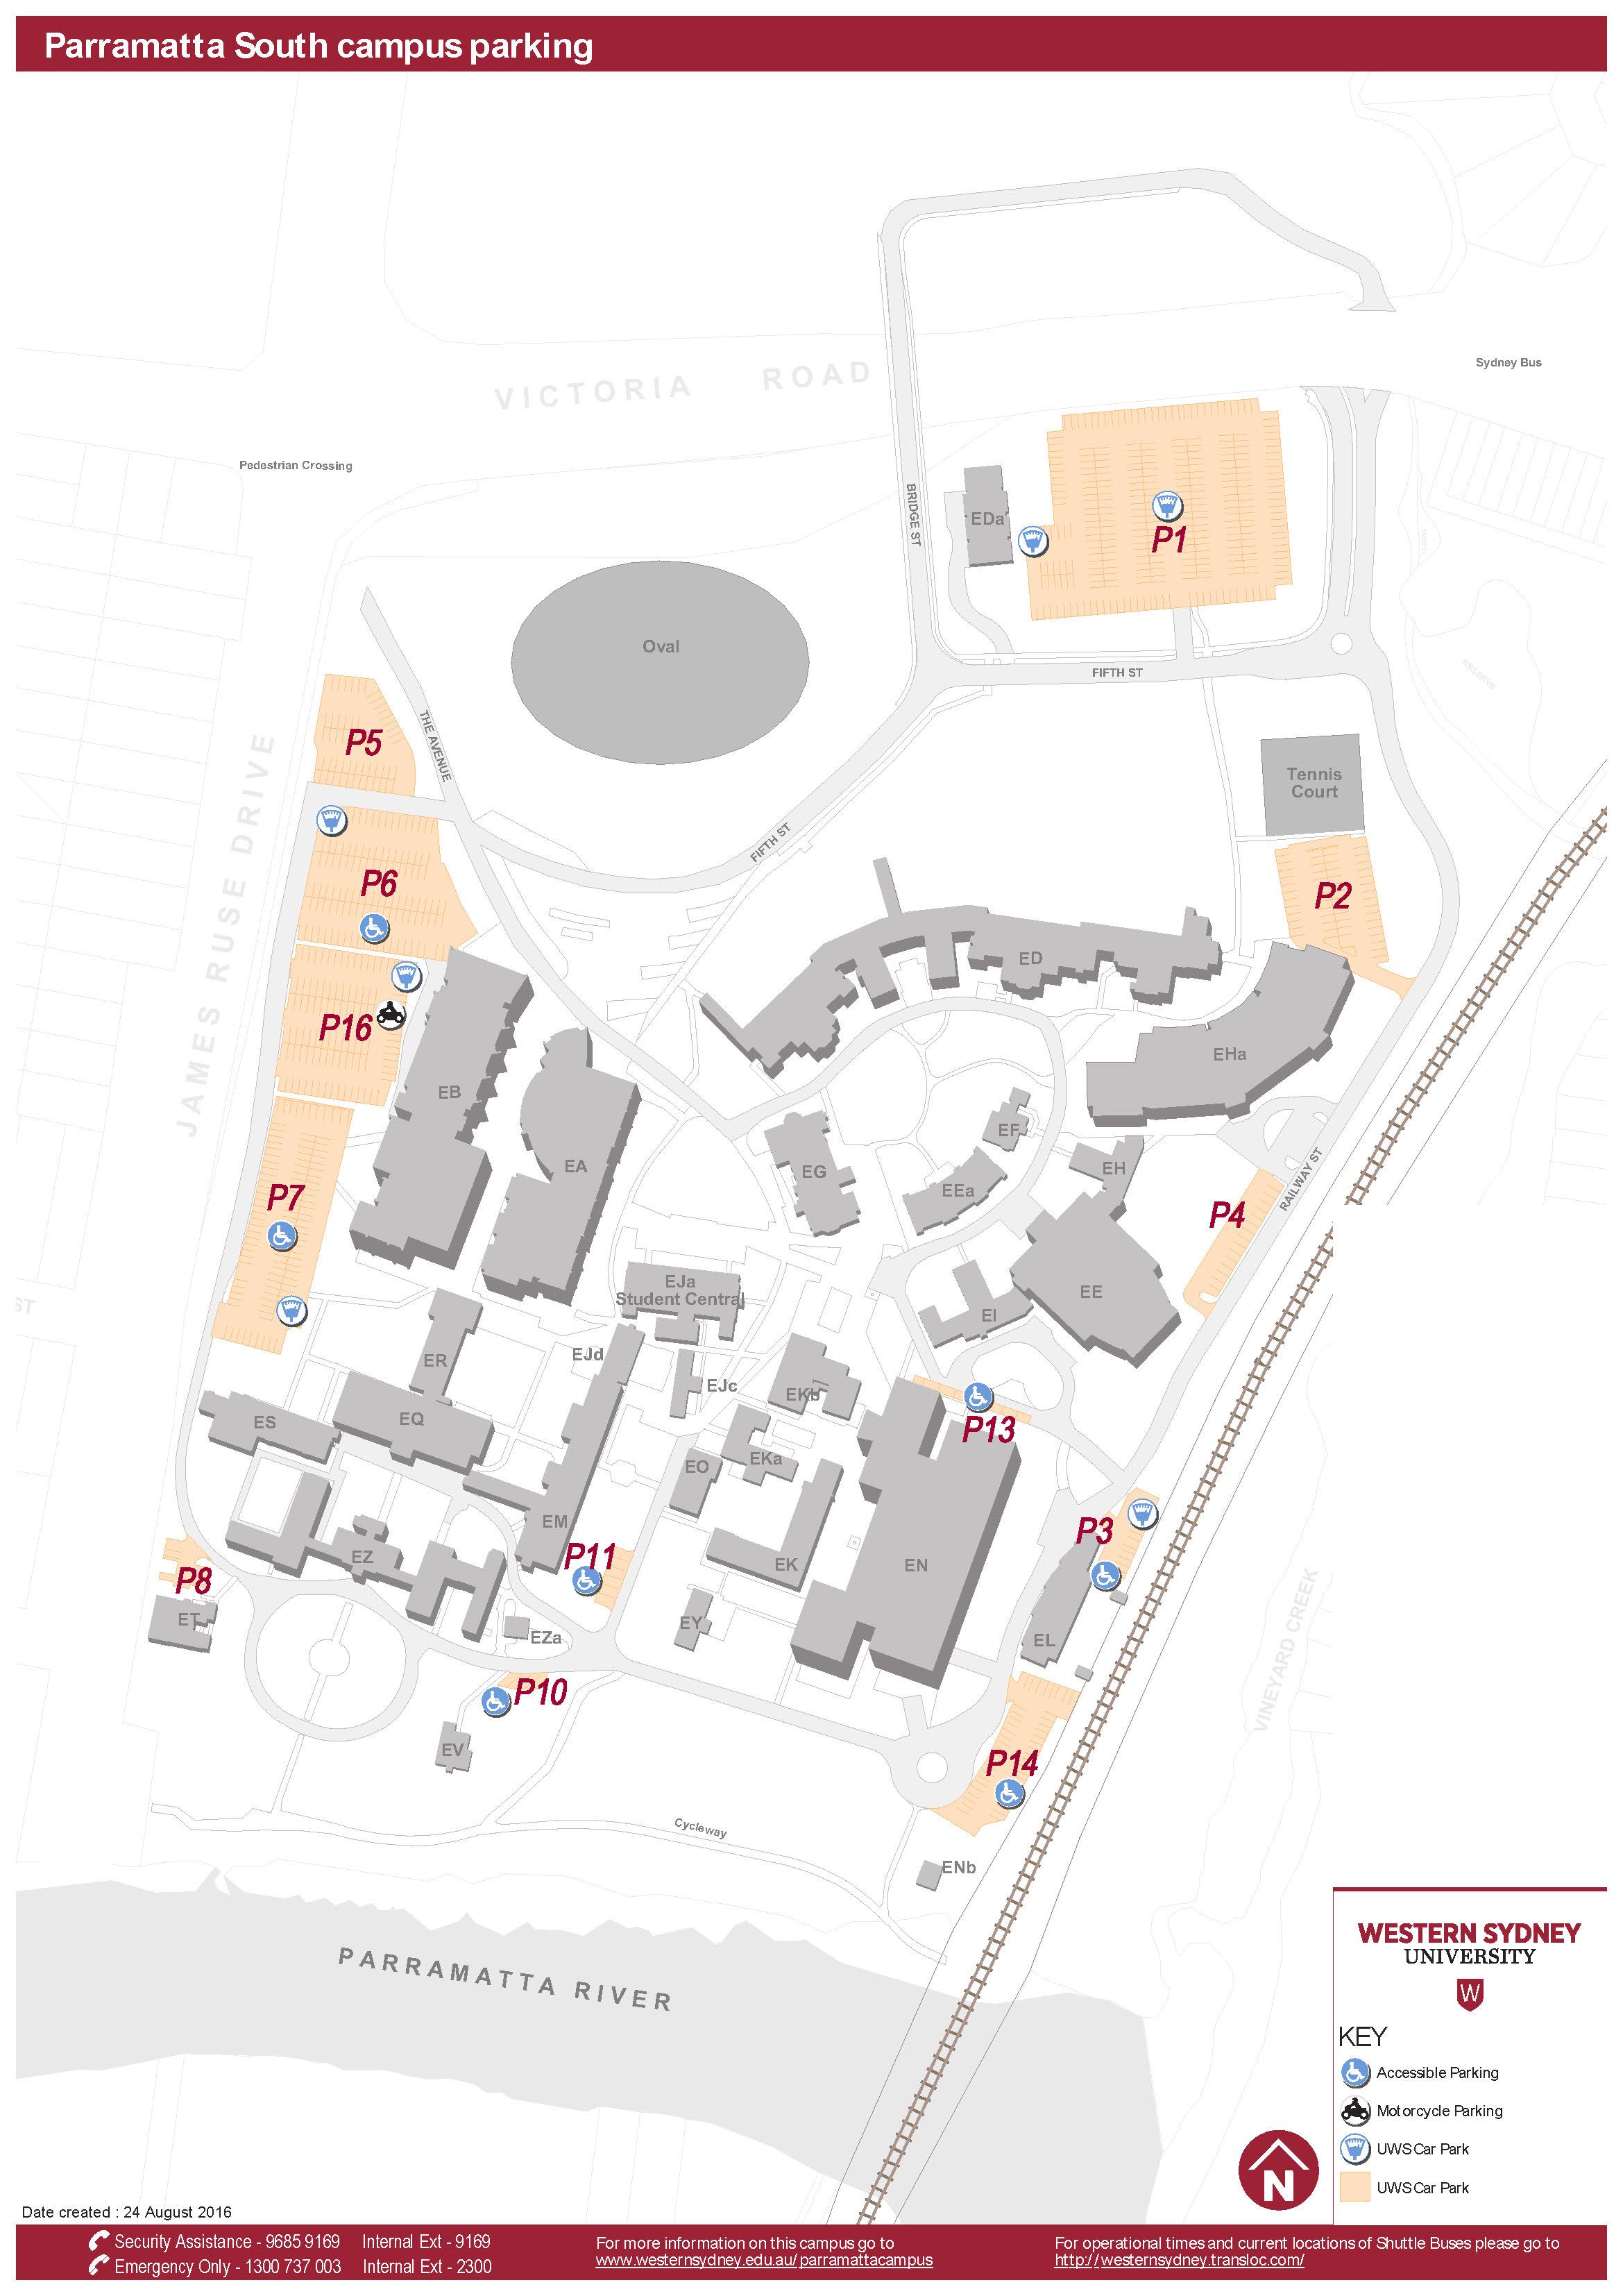 Parramatta South campus parking map